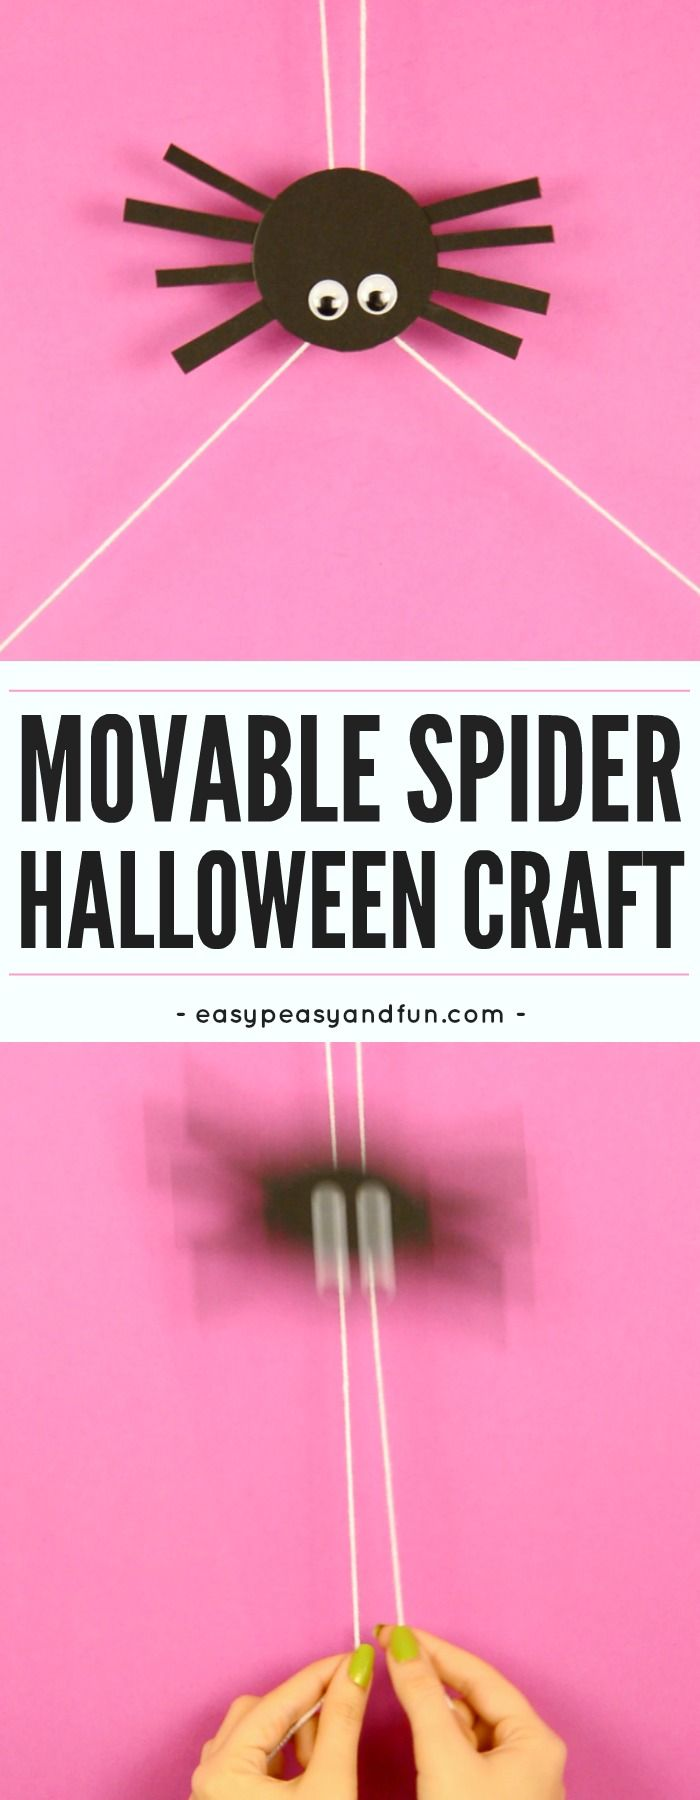 Movable spider craft for kids. Super fun Halloween craft idea for kids.